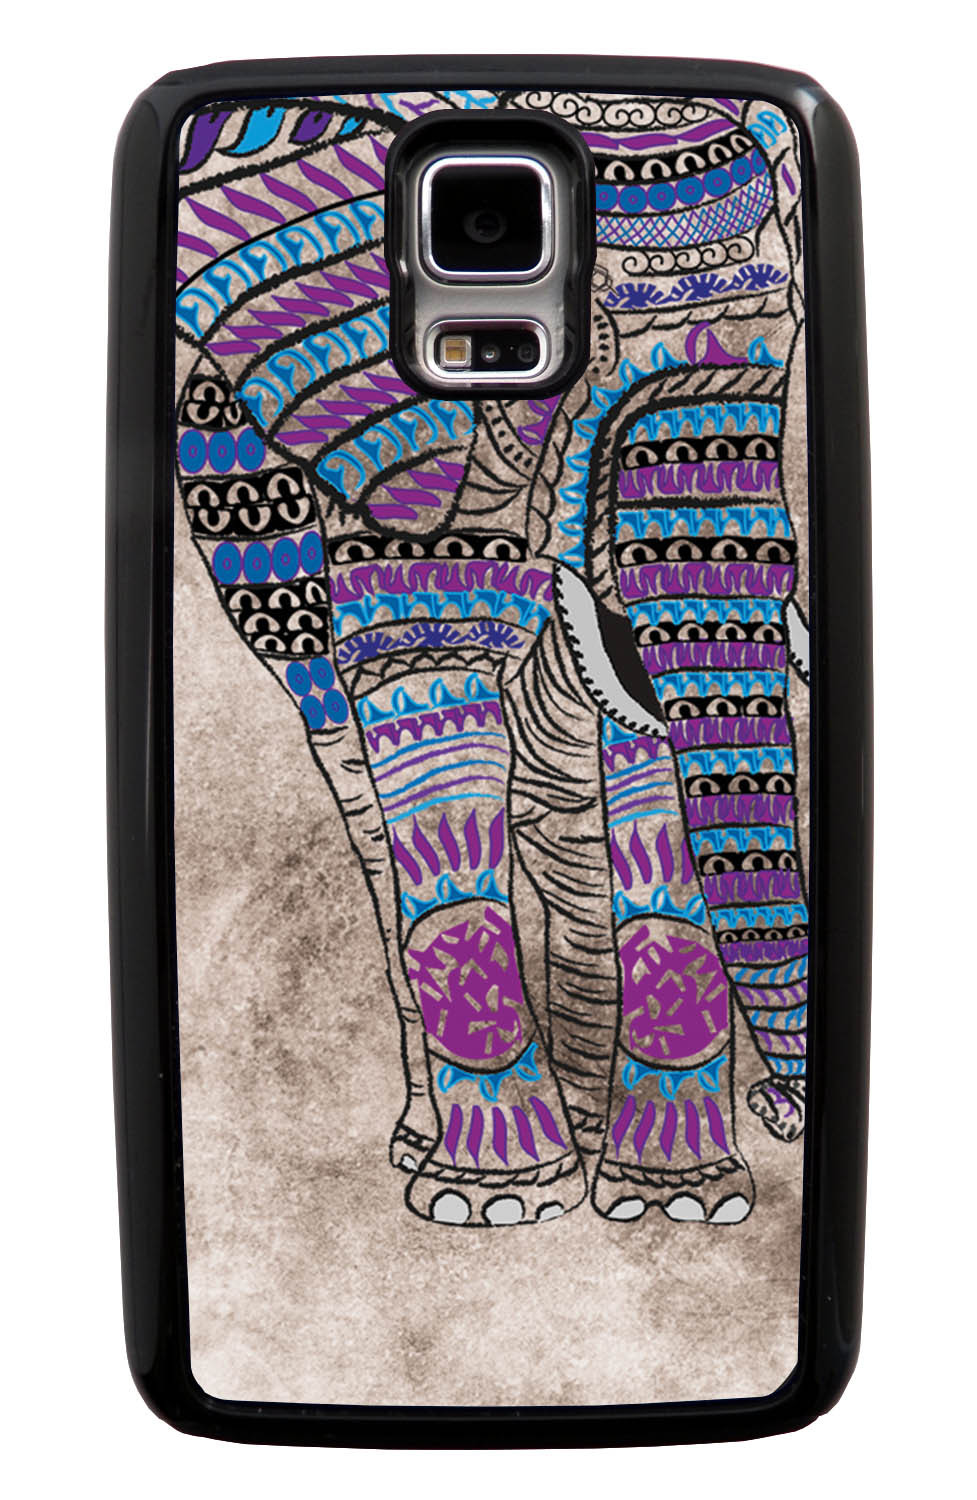 Samsung Galaxy S5 / SV Aztec Case - Purple and Blue Charcoal Drawing - Tribal Elephant - Black Tough Hybrid Case